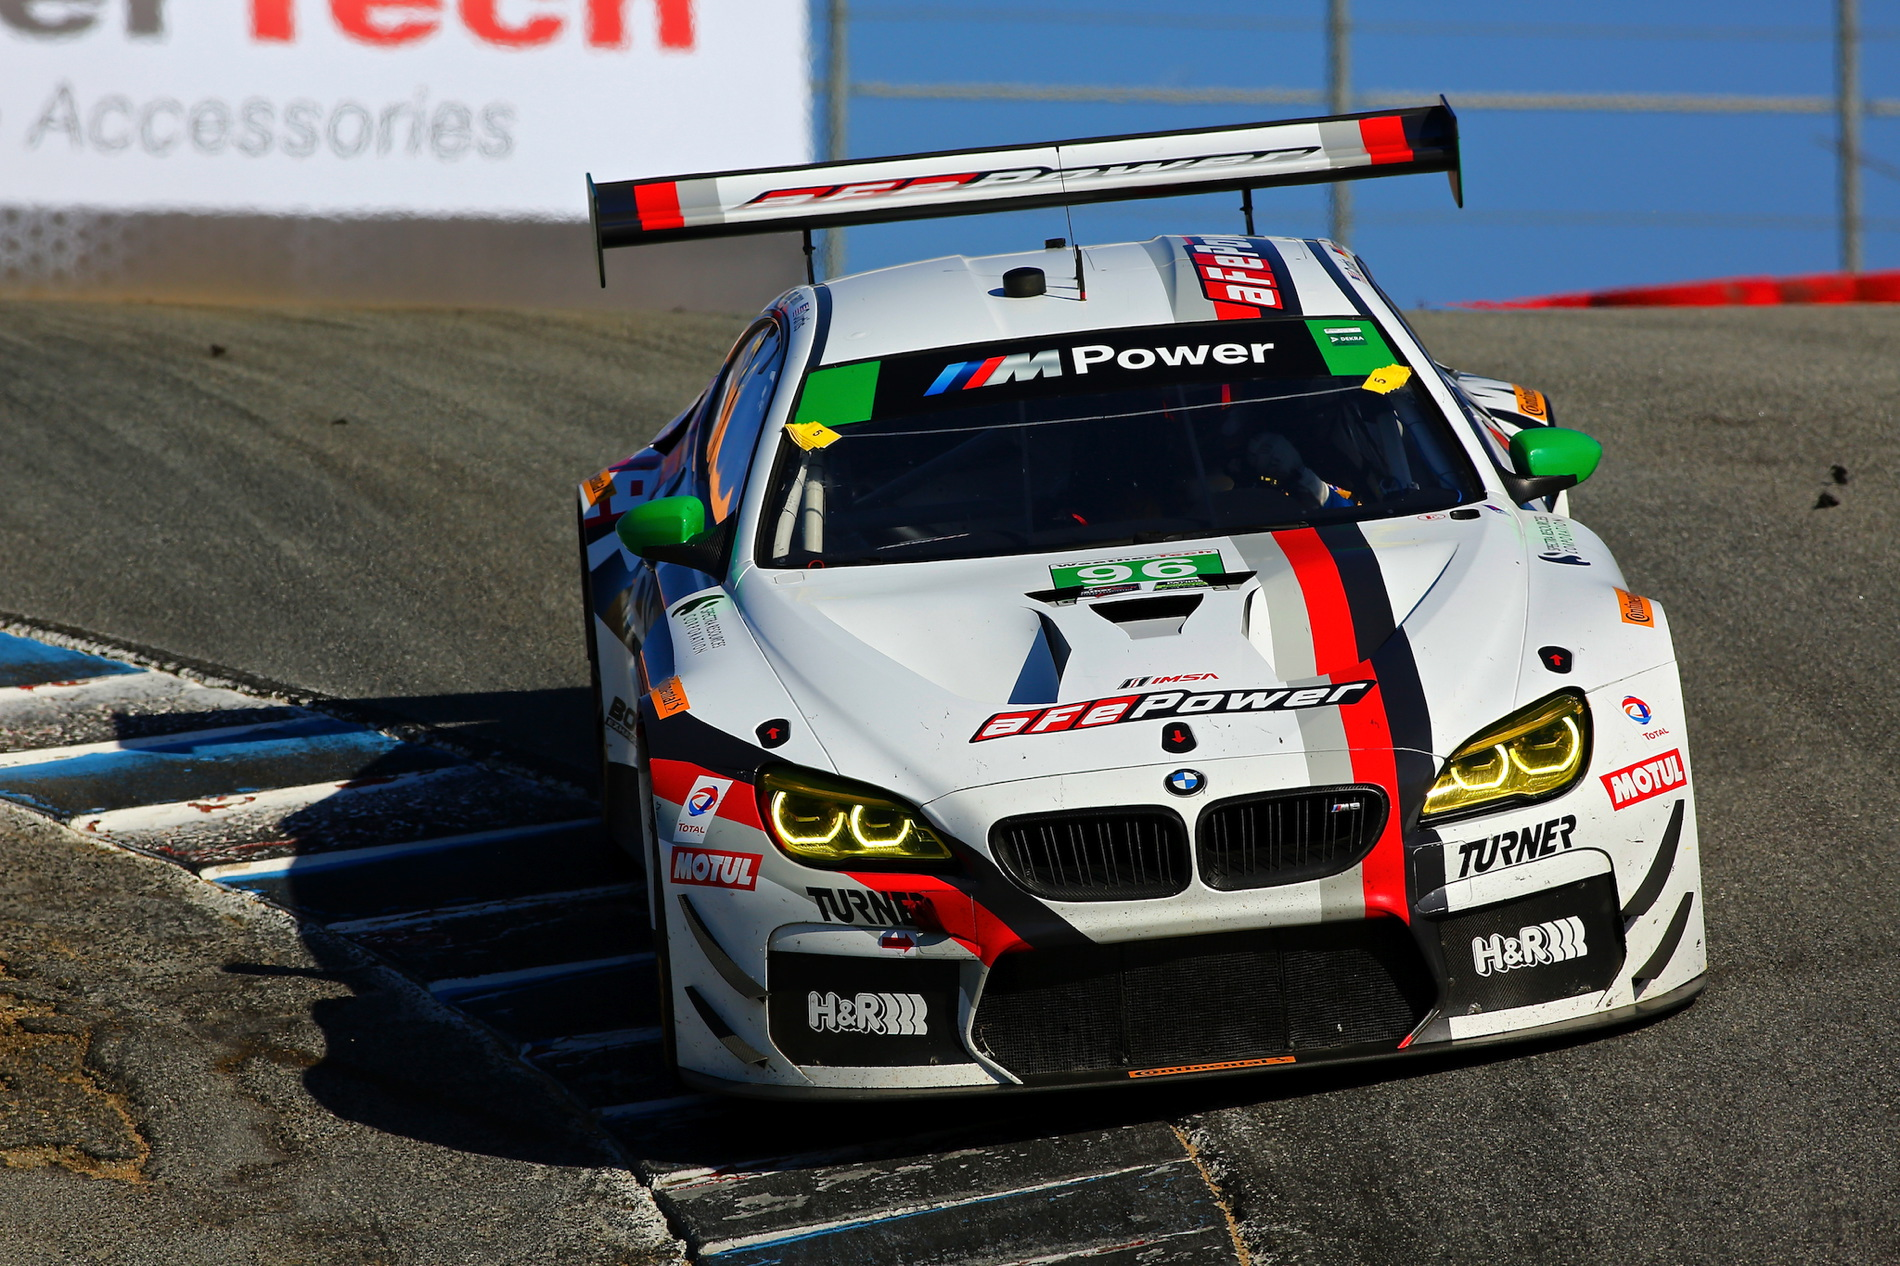 aFe Power BMW M6 GT3 Laguna Seca 27